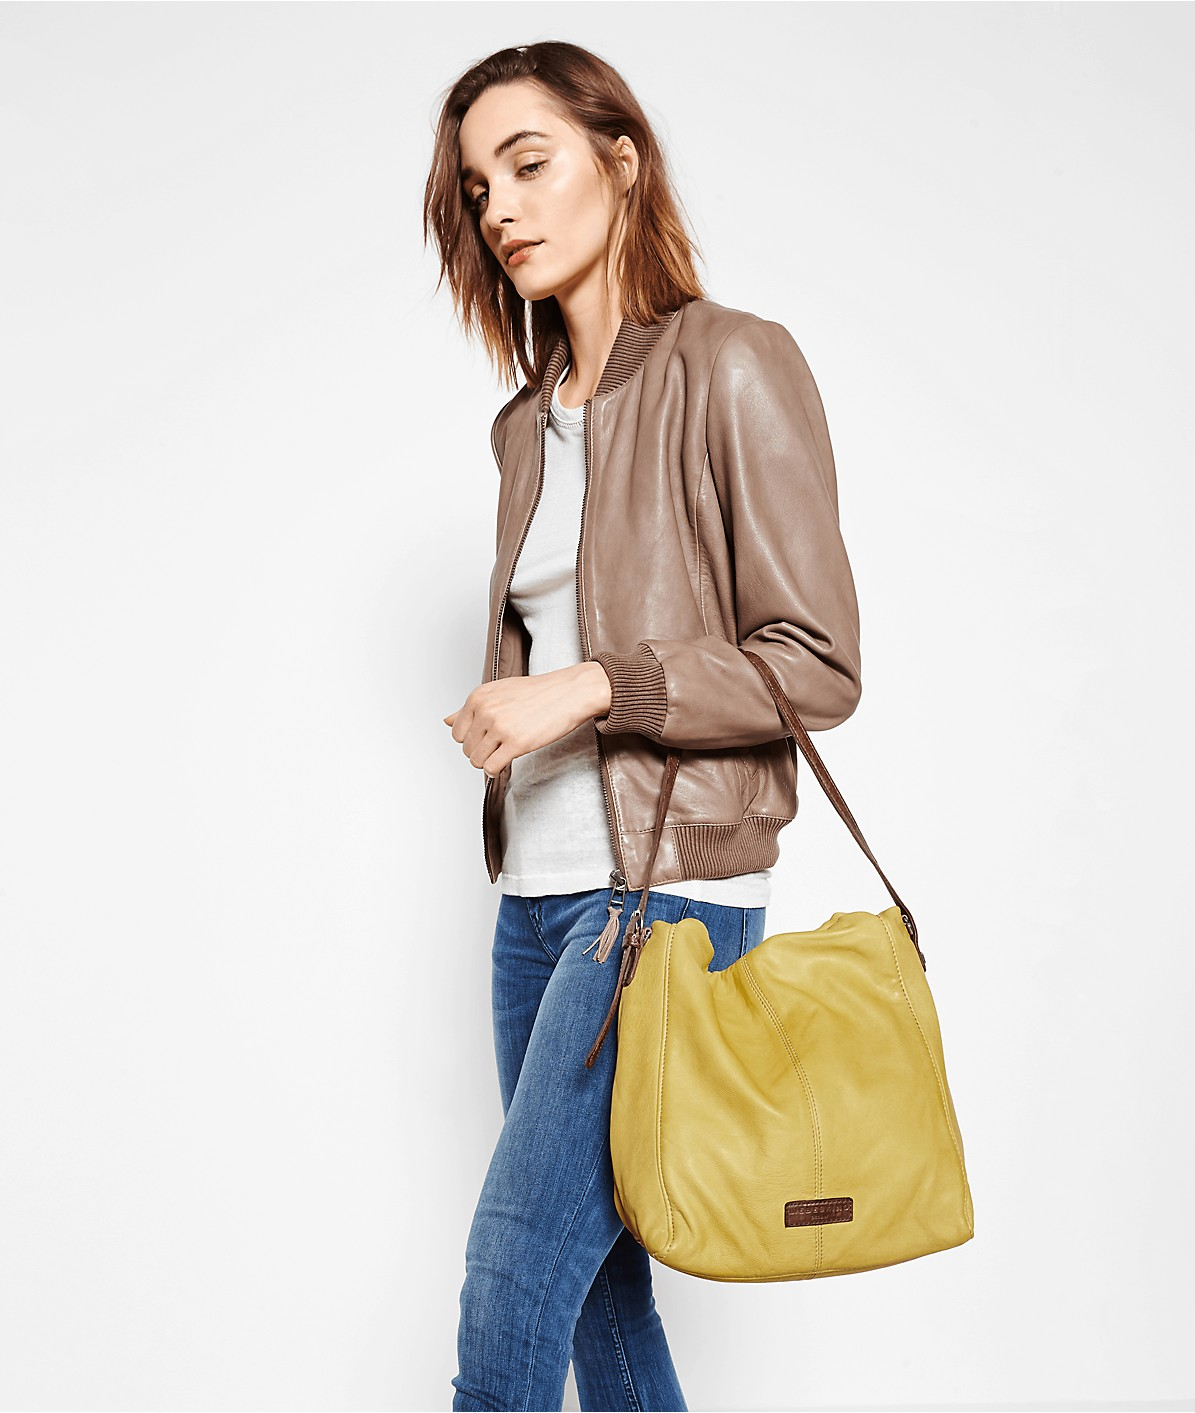 Malabo handbag from liebeskind